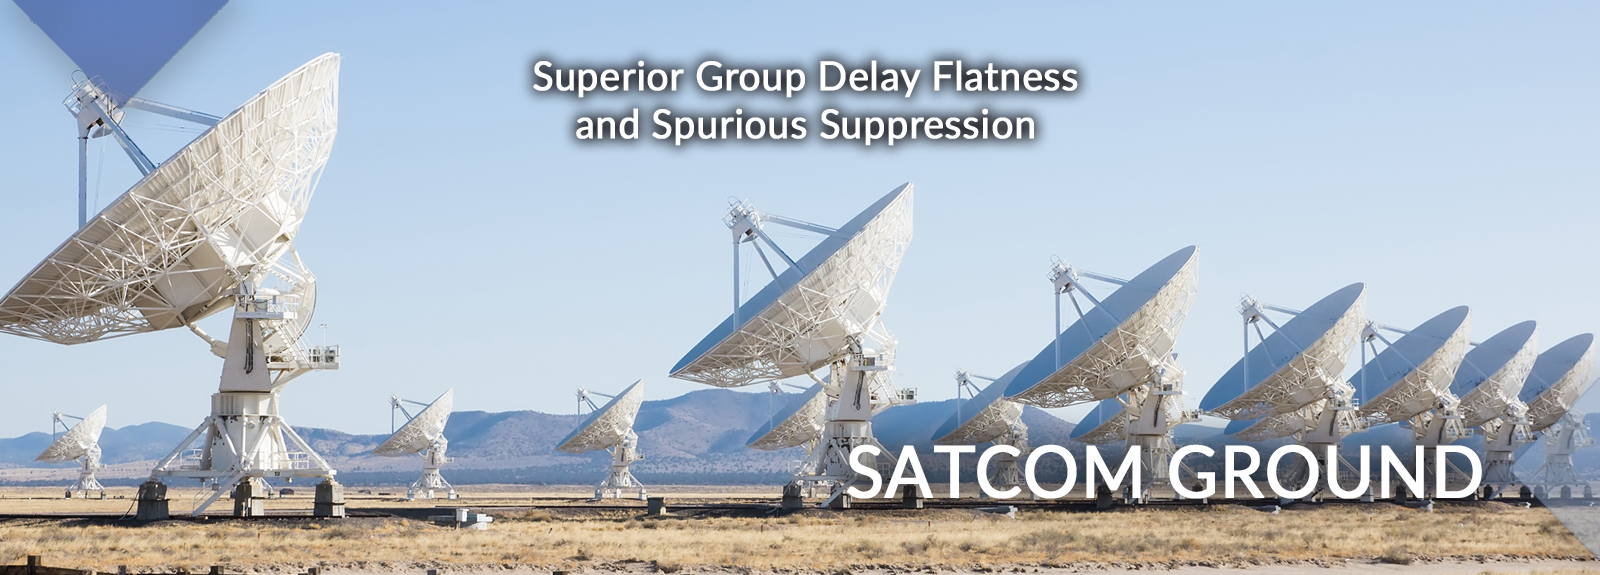 fei_slides_satcom_ground